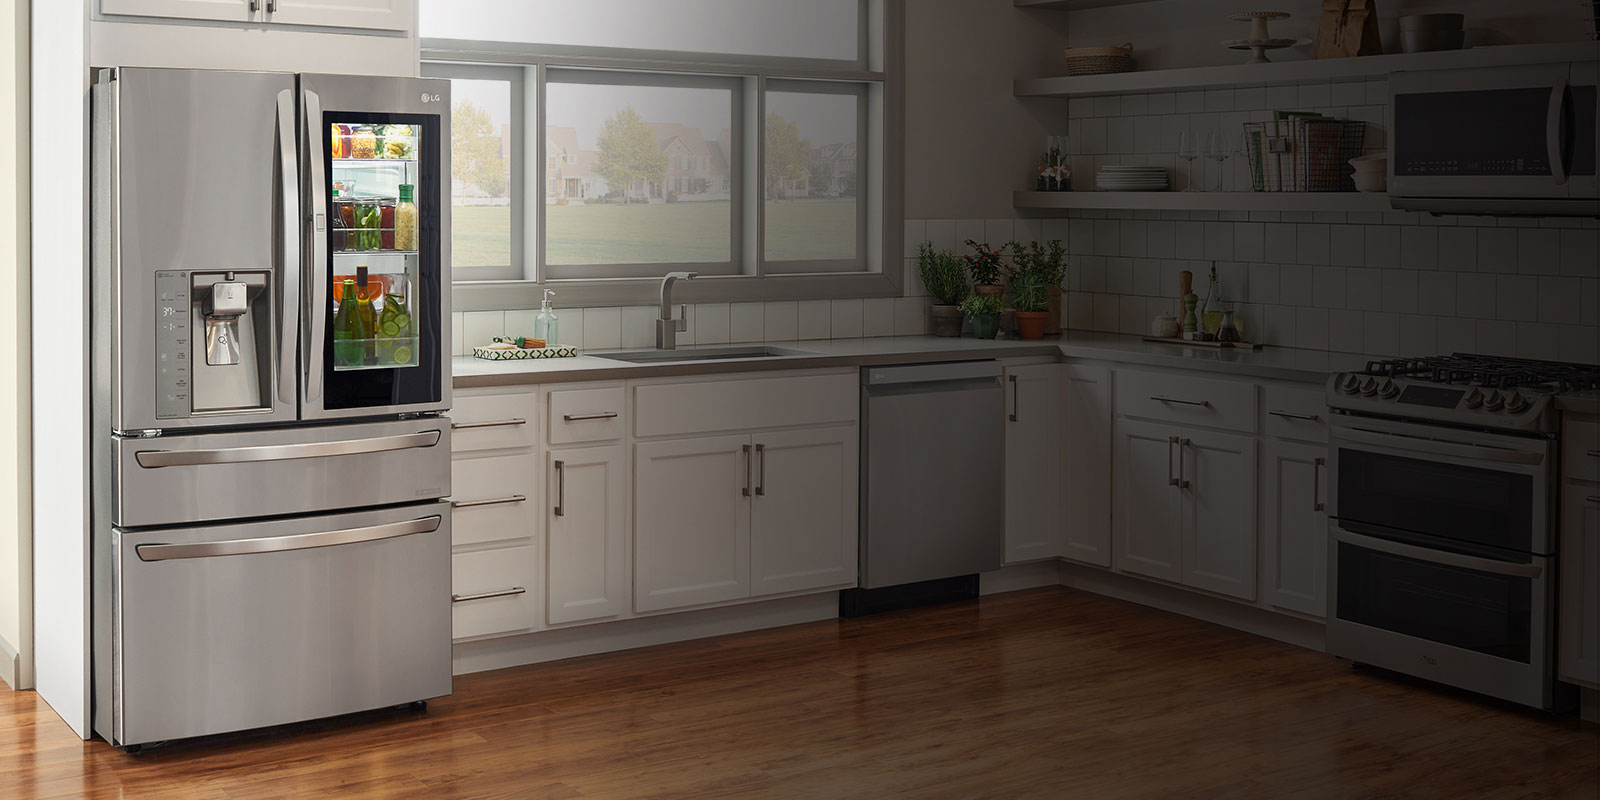 How Much Can a New Refrigerator Save on Electricity Costs?